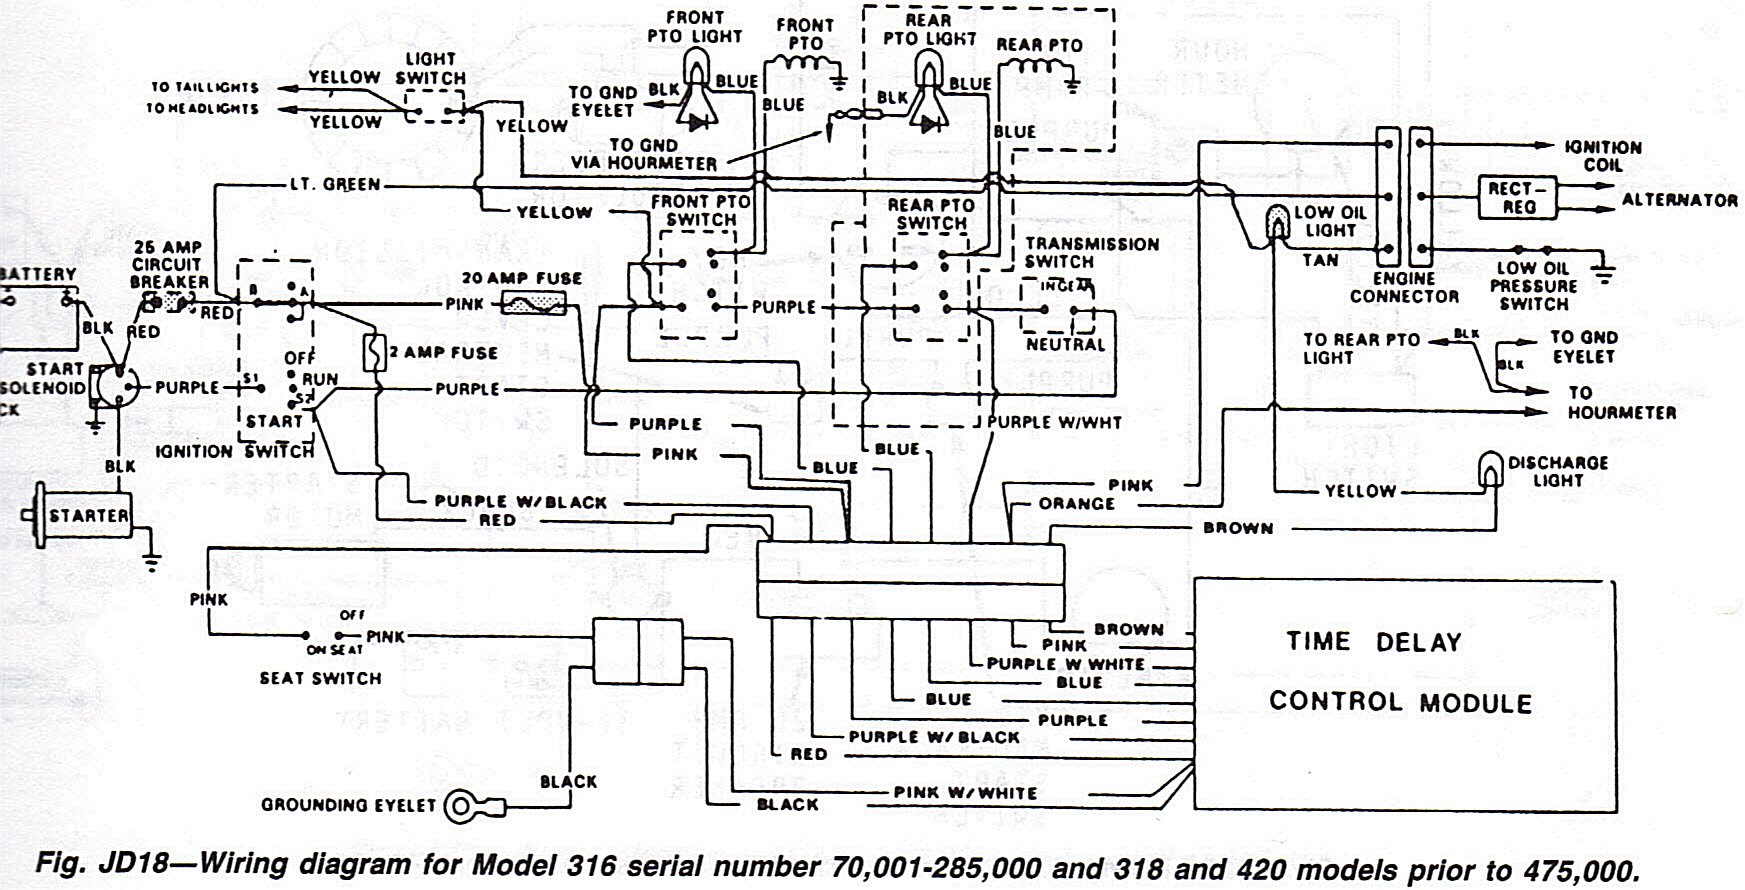 Onan Engine Wiring Diagram Just Another Blog Generator Troubleshooting On 6500 Ignition How Do I Hook Up A P218g To The Start Switch Without Rh Justanswer Com P220 Old Generators Diagrams